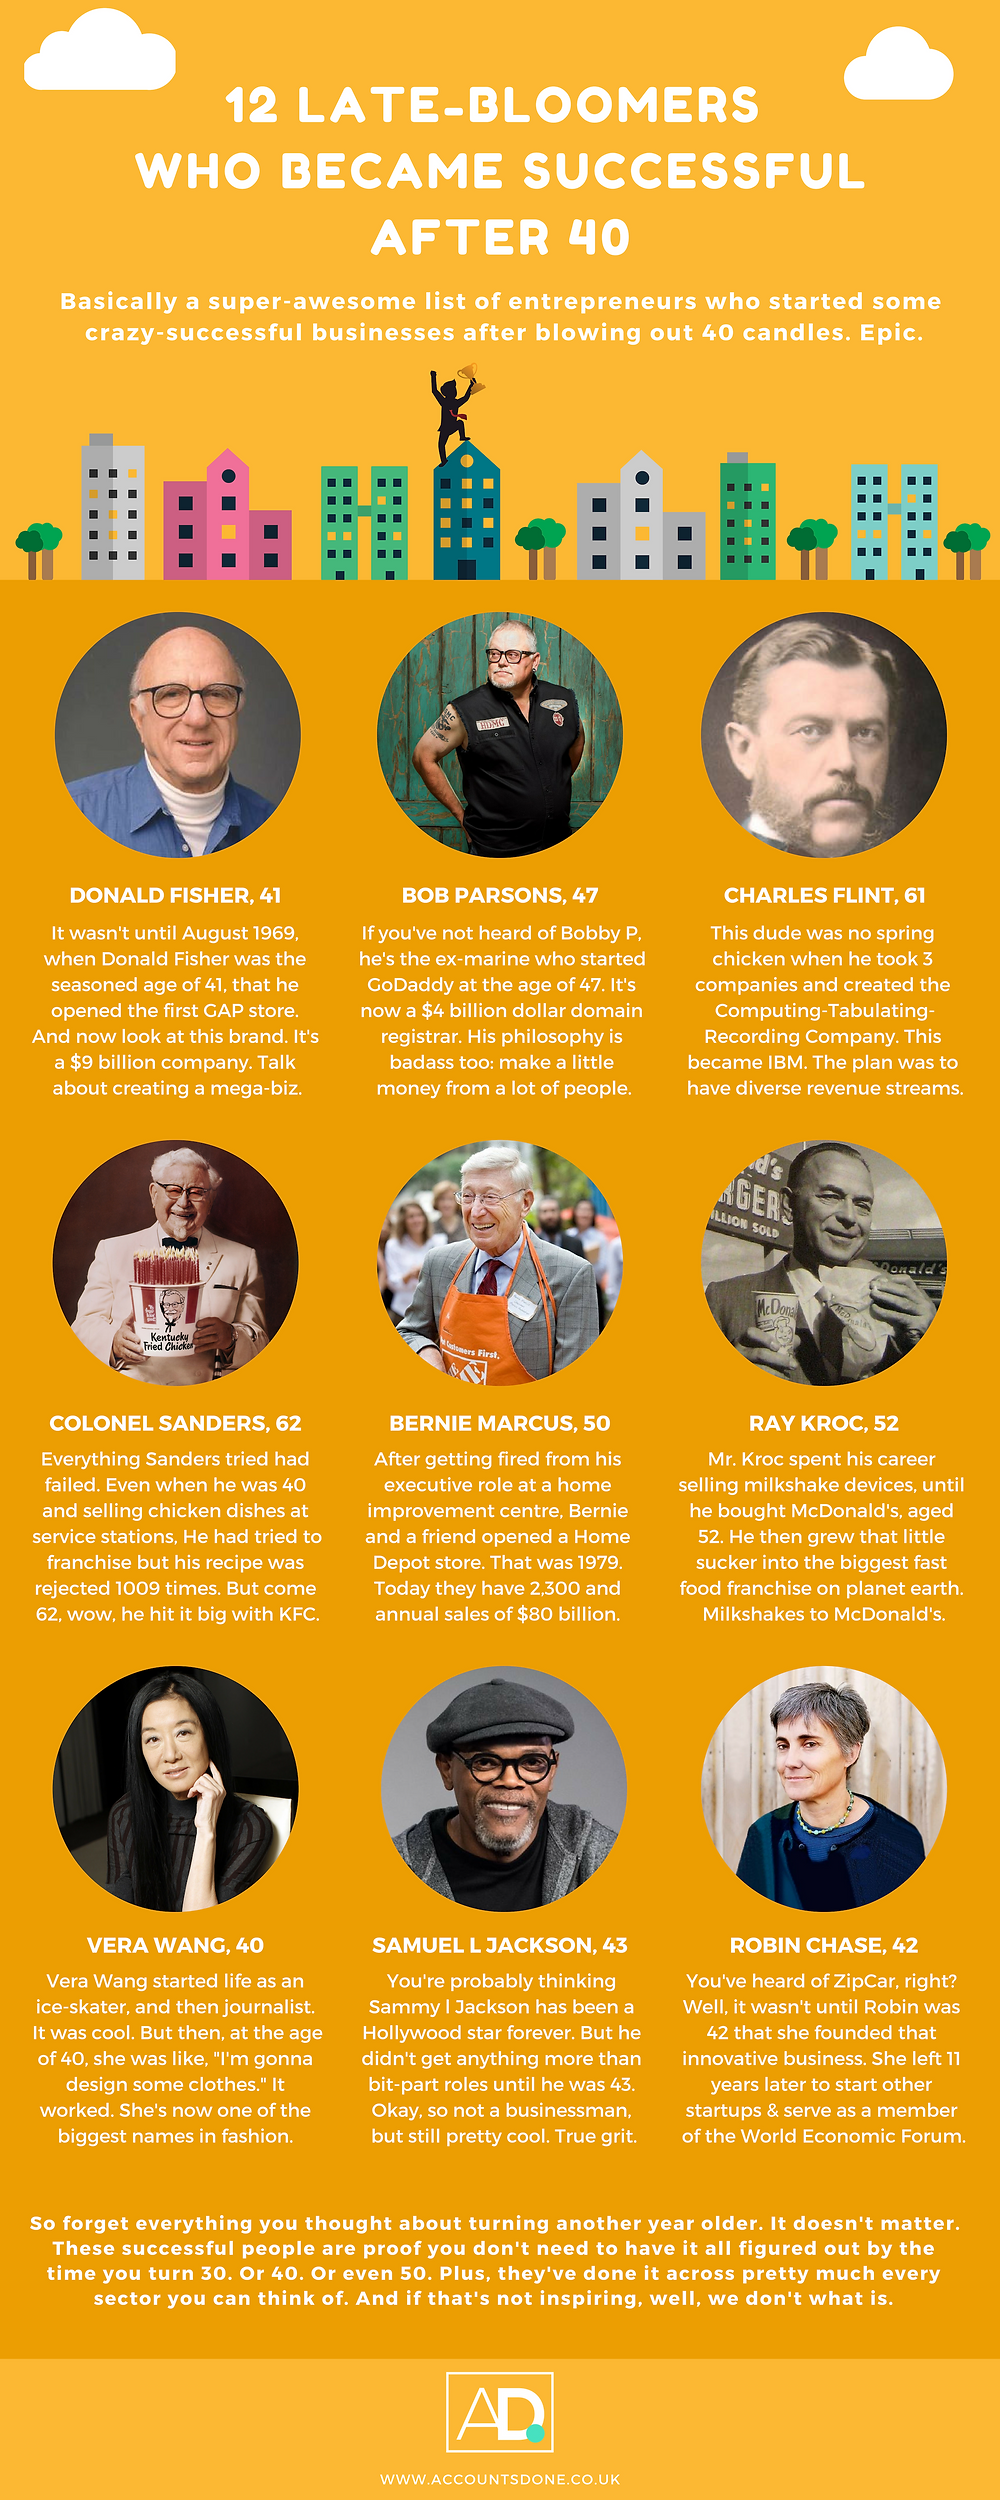 Accounts Done old entrepreneurs who found success at 40